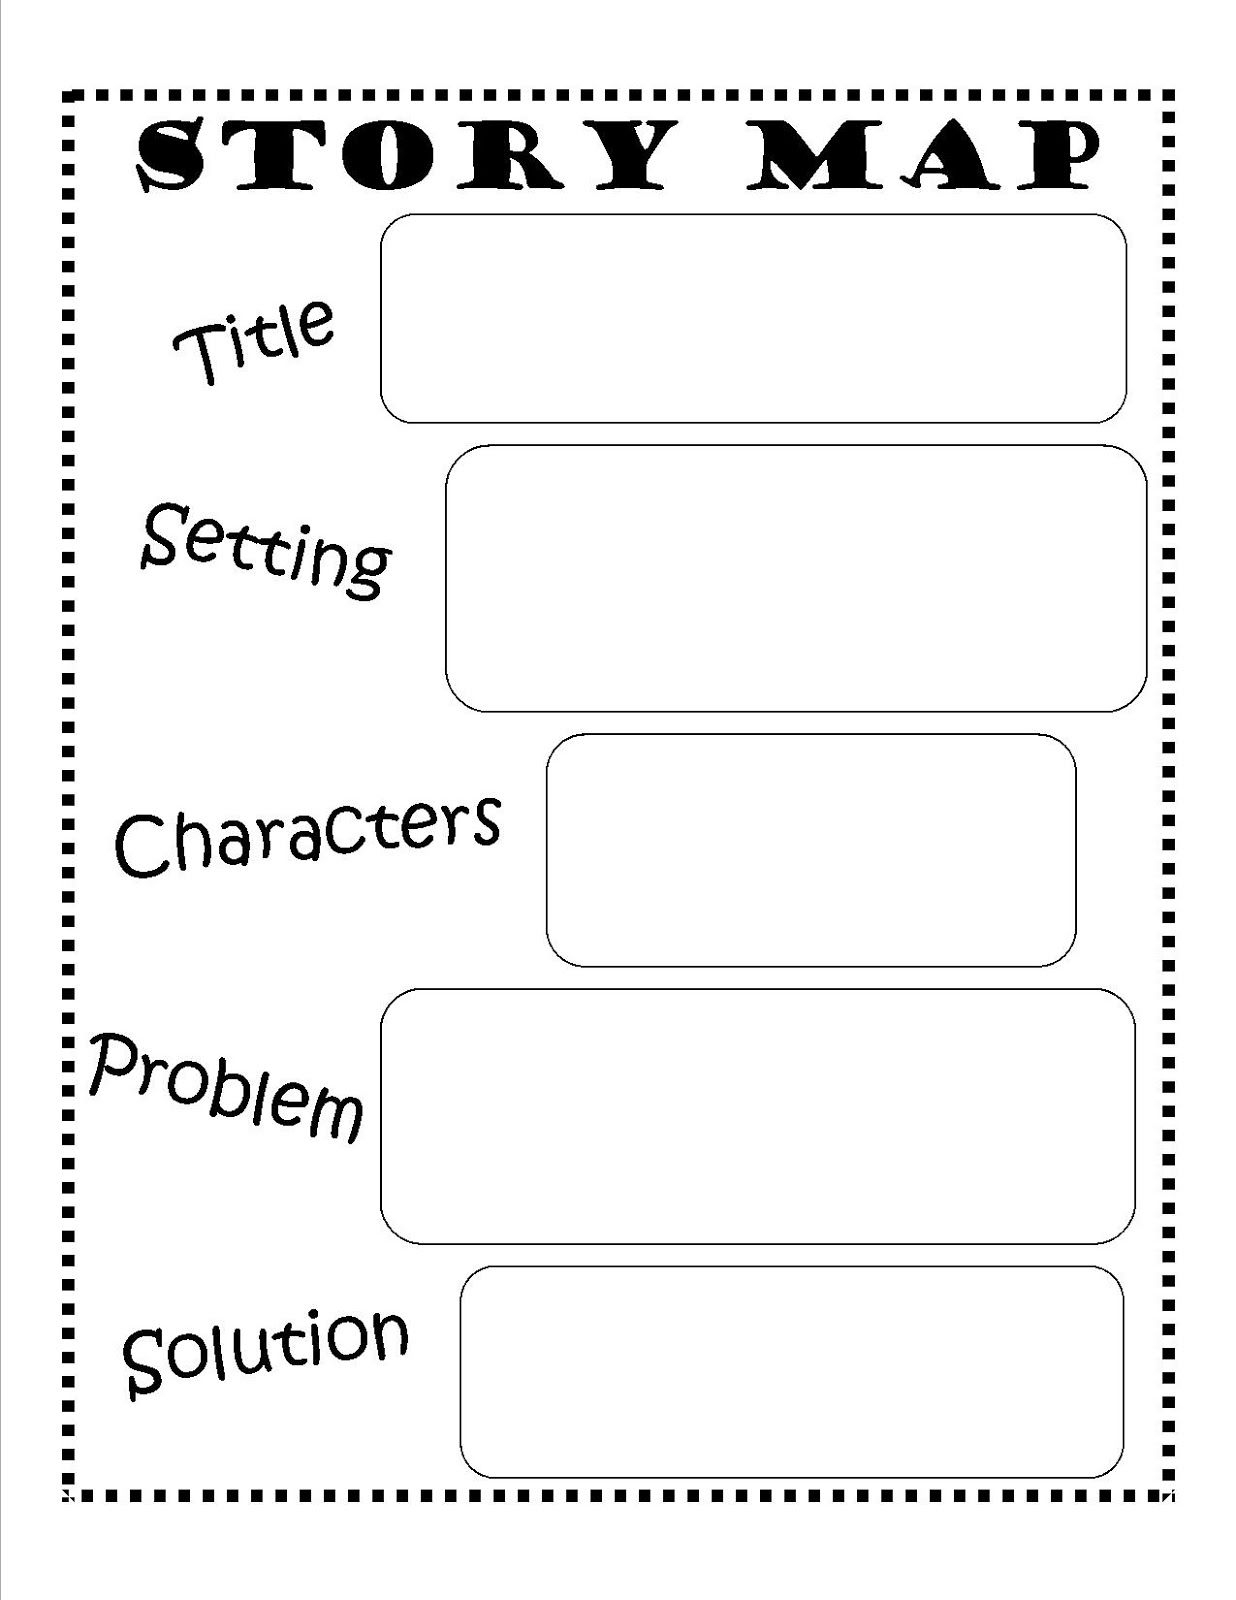 Ginger Printable Story Map Graphic Organizer - 4.6.kaartenstemp.nl • - Printable Story Map Graphic Organizer